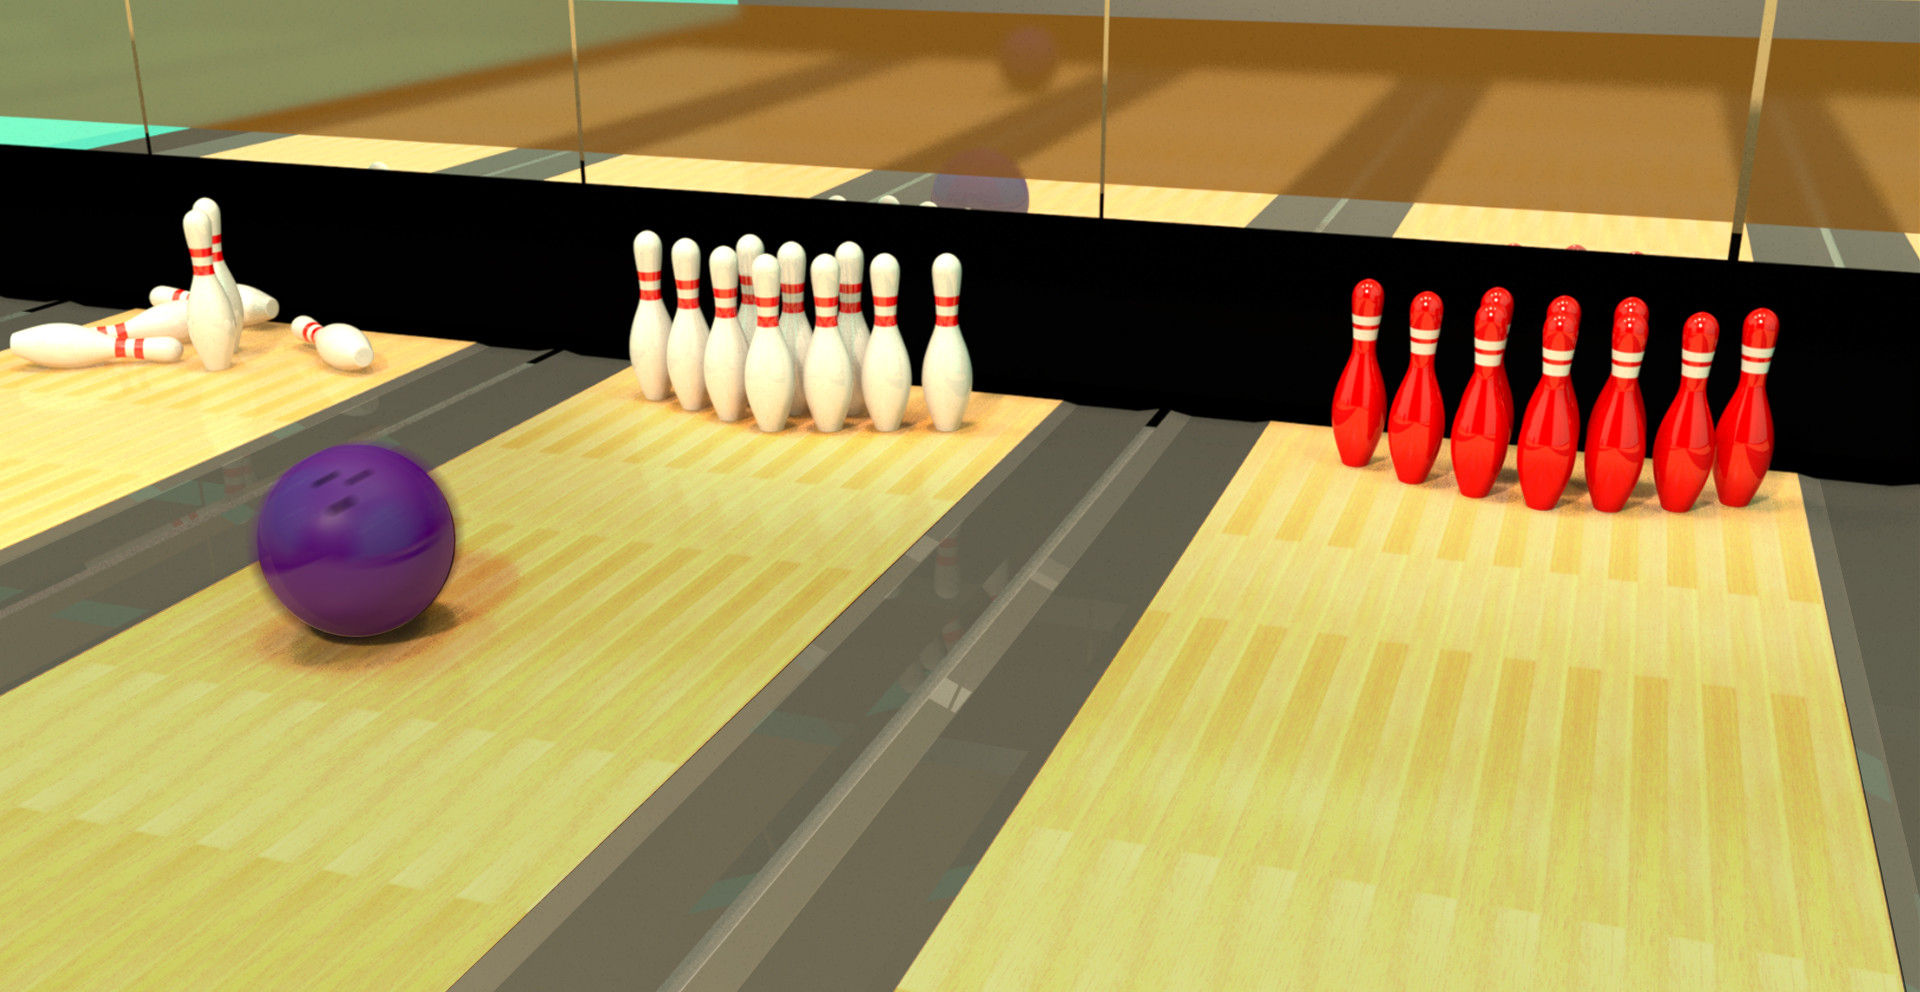 Rajesh sawant bowling alley7